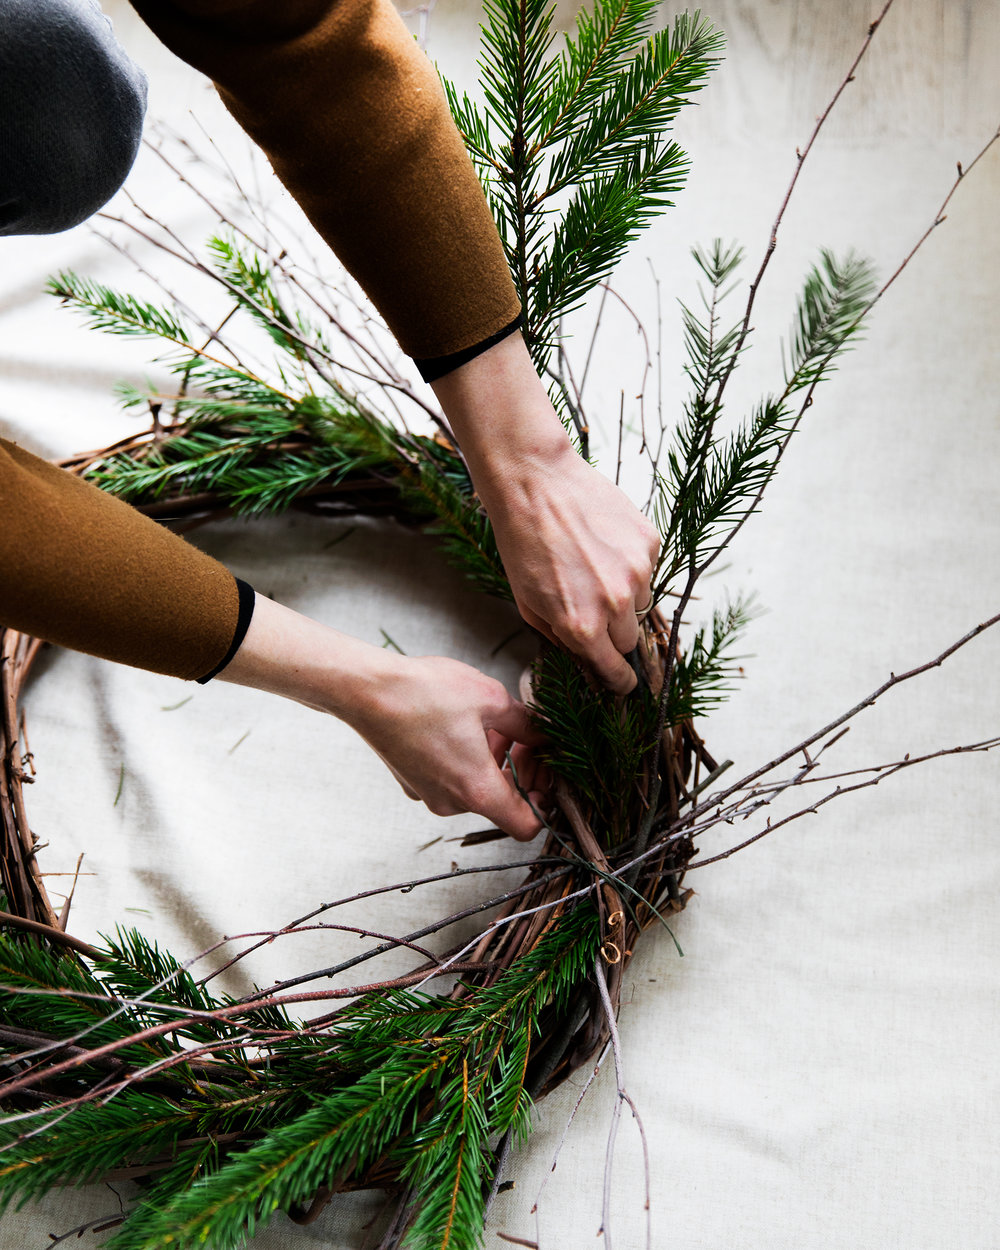 Step Three - Begin adding your evergreen pieces. Intertwine them between the branches and the grapevine wreath, until they are well situated and don't feel loose. You'll want to take some time here to really tuck them into place. Mixing sizes will create a more layered look, so try various arrangements of short pieces alongside long ones.